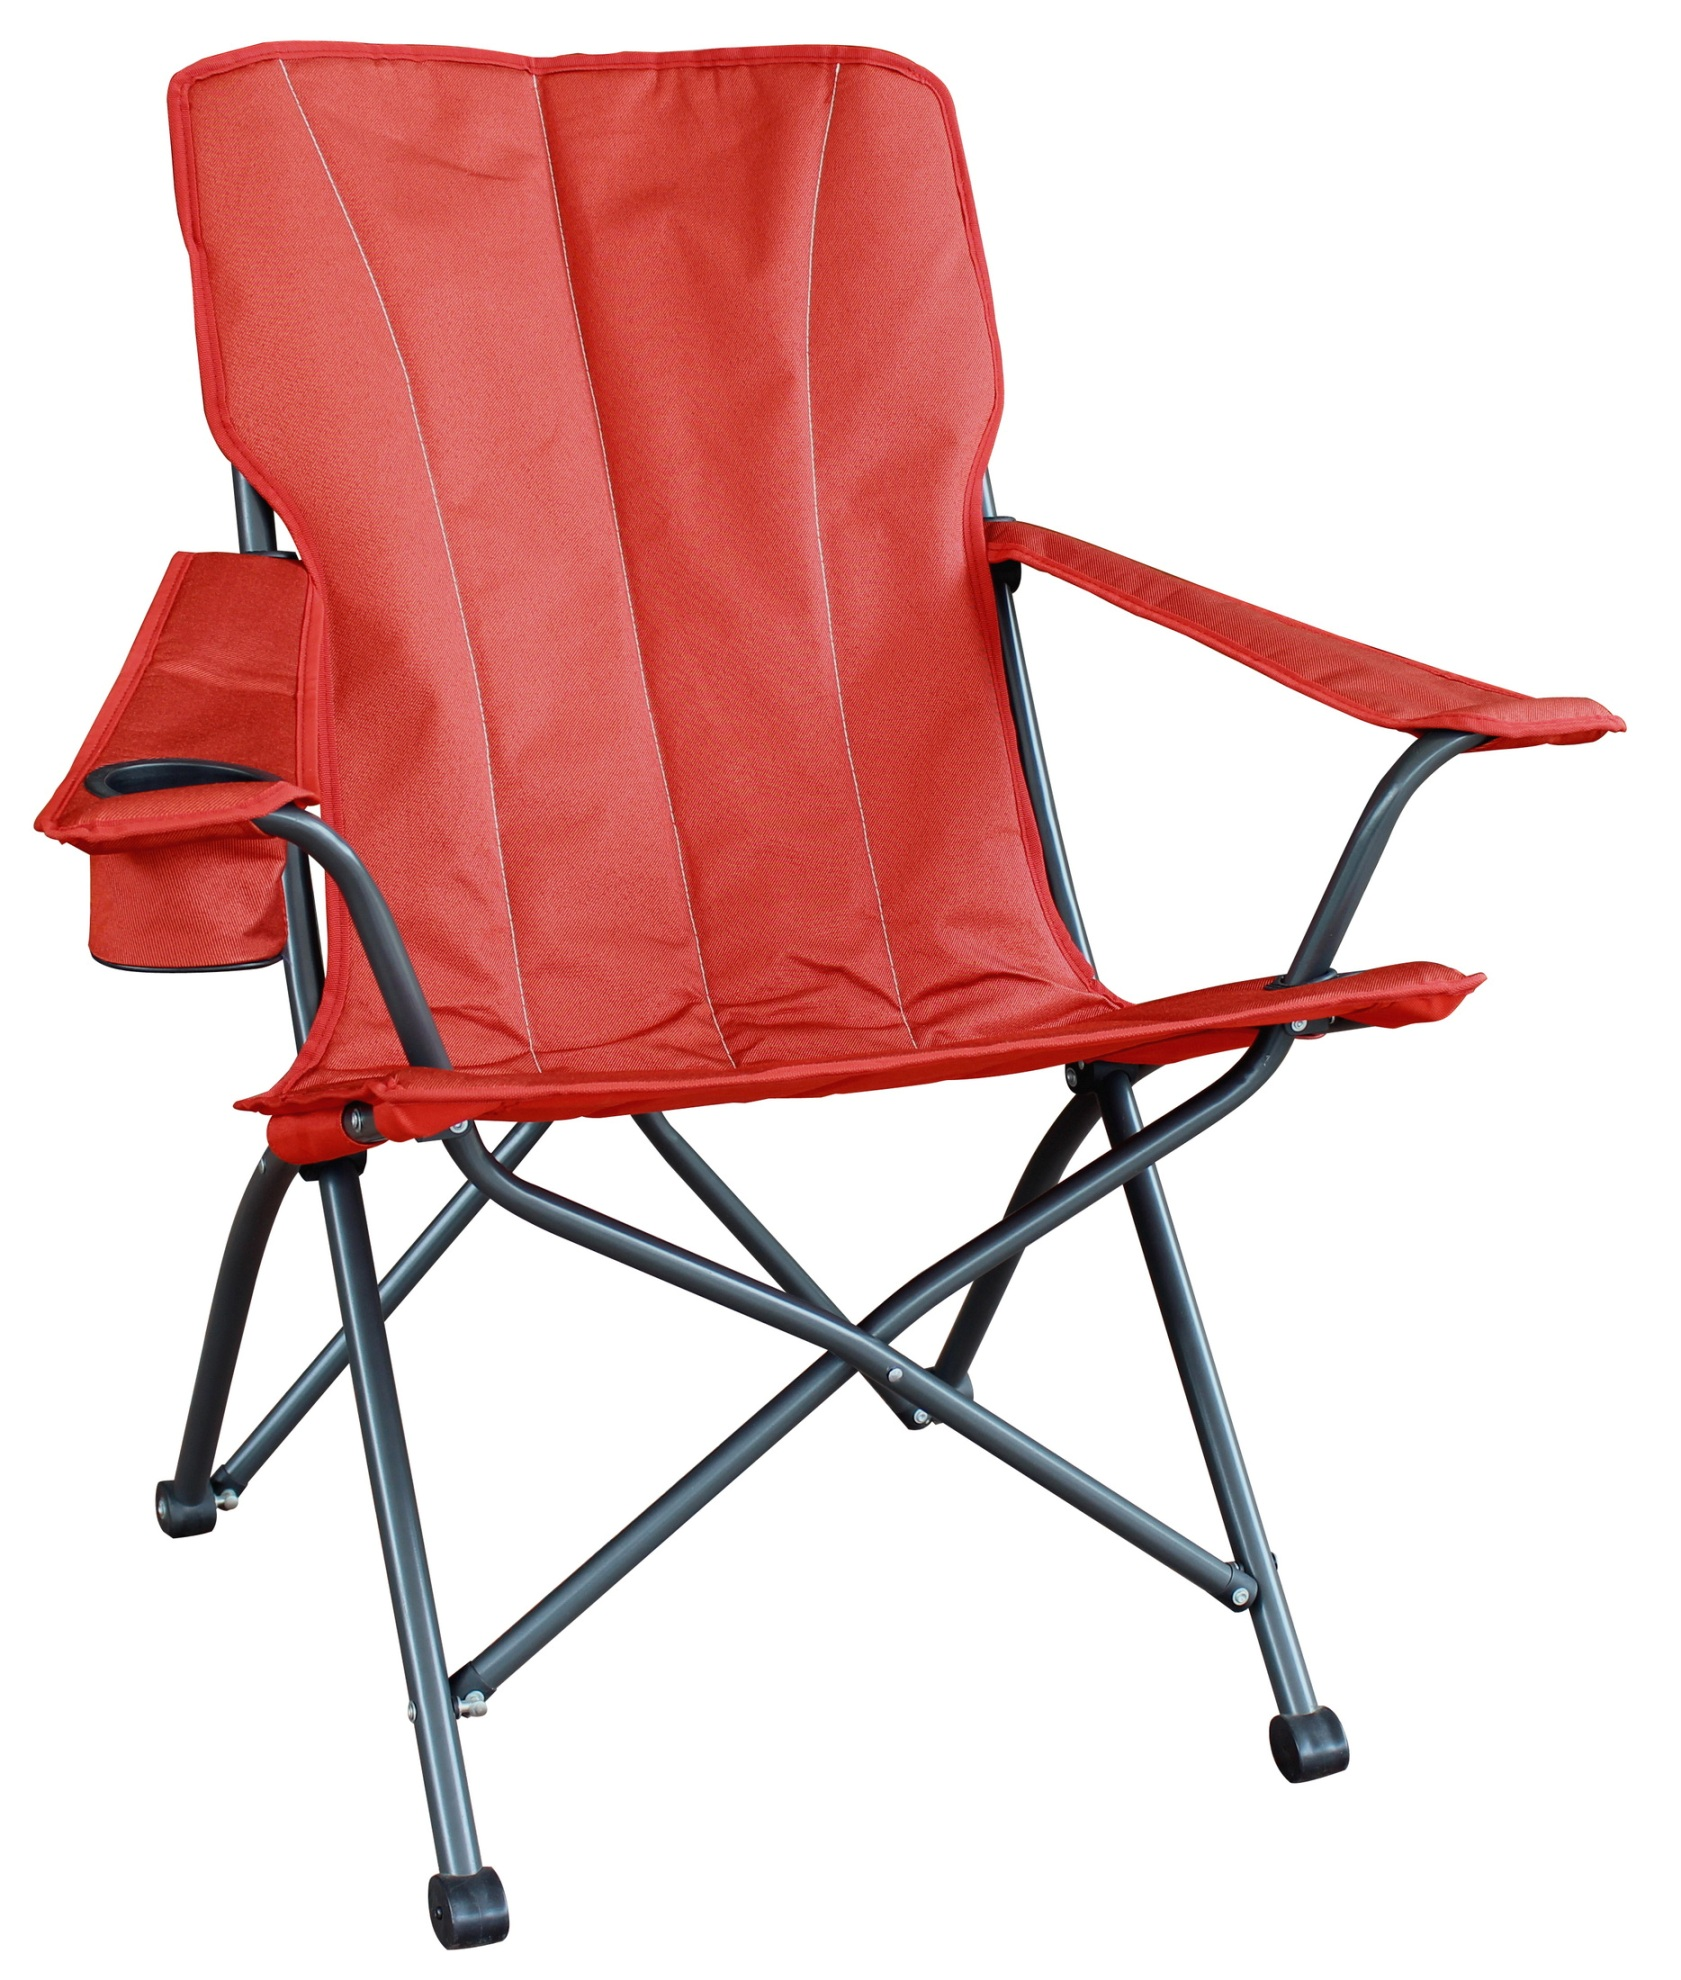 outdoor sports chairs revolving chair for baby northwest territory adirondack folding red